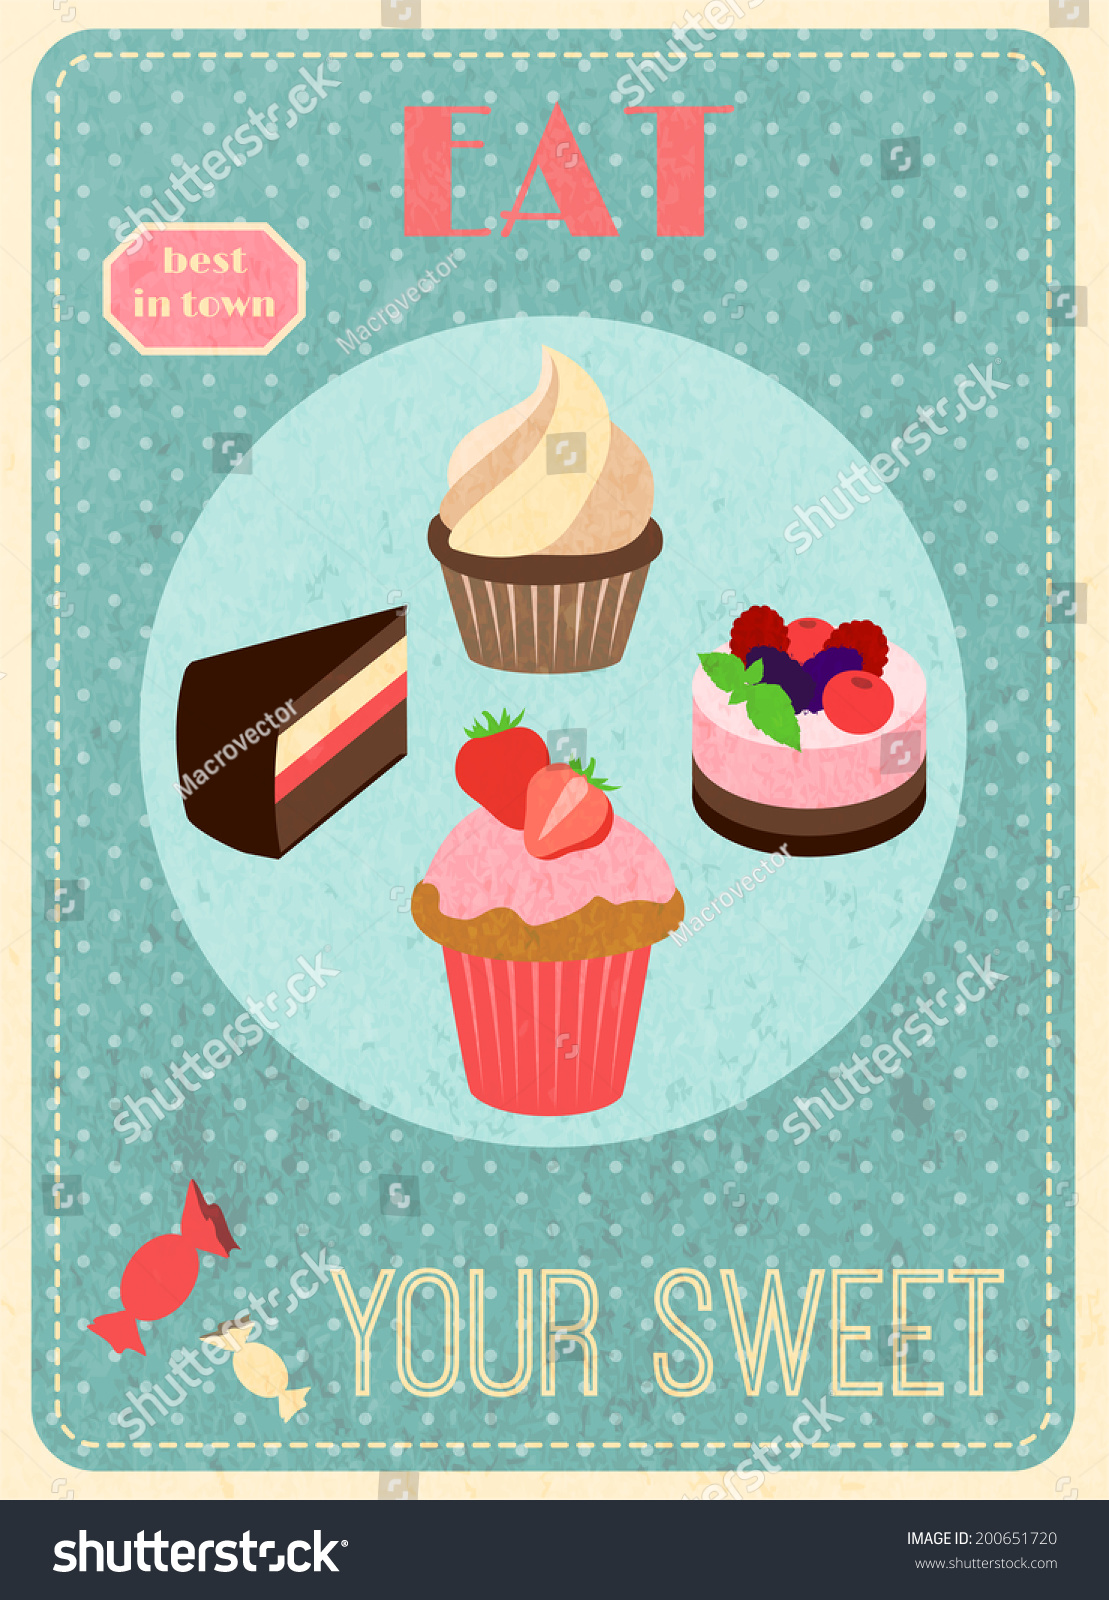 eat your sweet retro poster cupcake layered cake dessert save to a lightbox